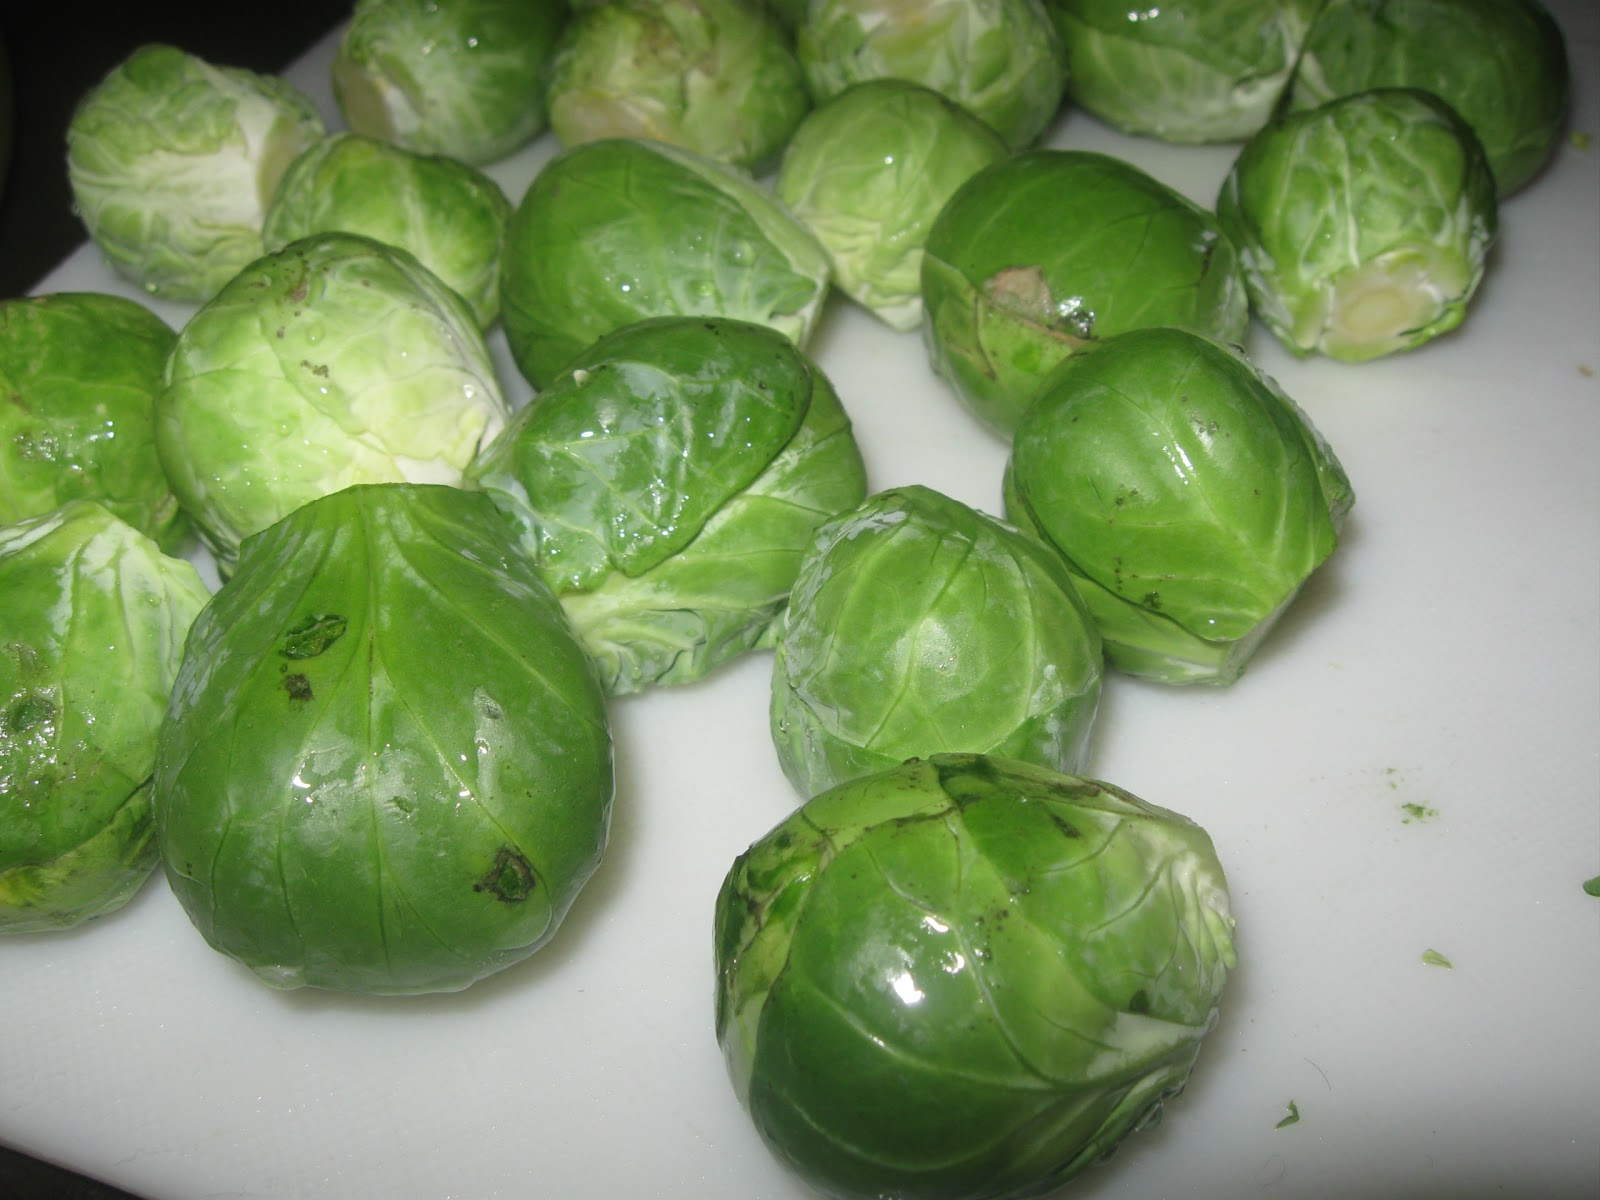 roasted brussels sprouts from allrecipes com 1 1 2 lbs brussel sprouts ...